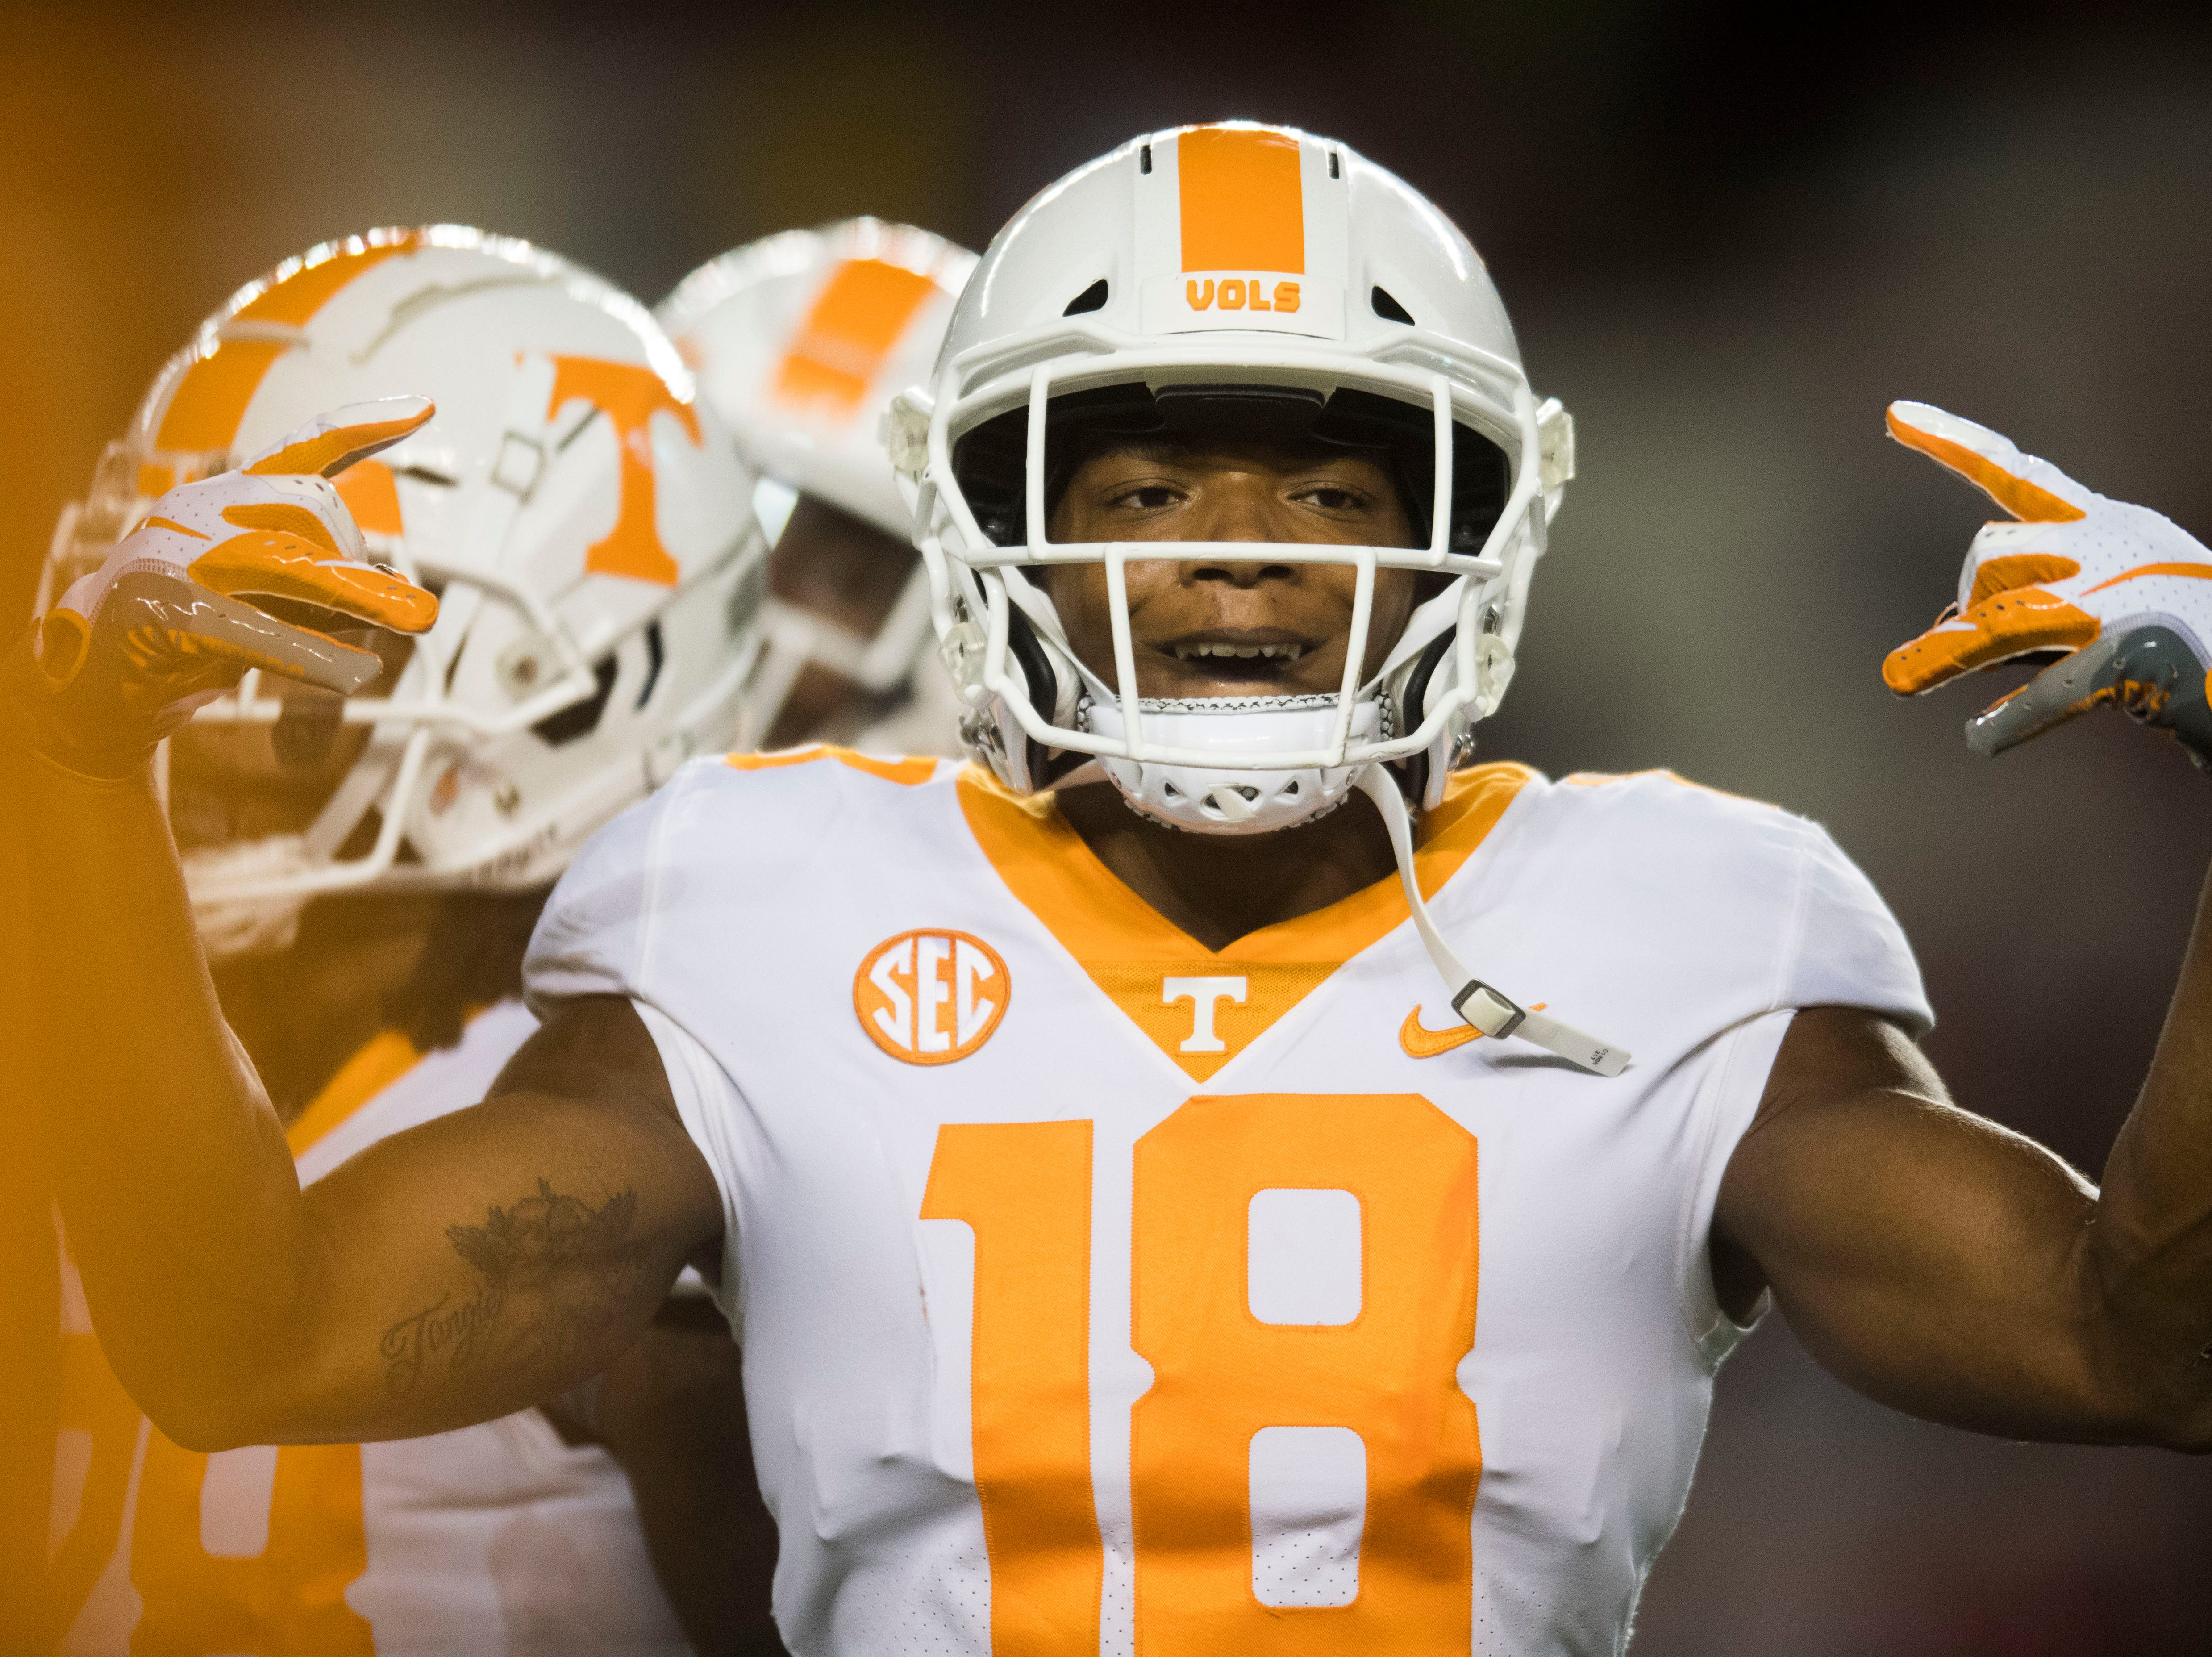 Tennessee defensive back Nigel Warrior (18) dances on the field before a game between Tennessee and South Carolina at Williams-Brice Stadium Saturday, Oct. 27, 2018.